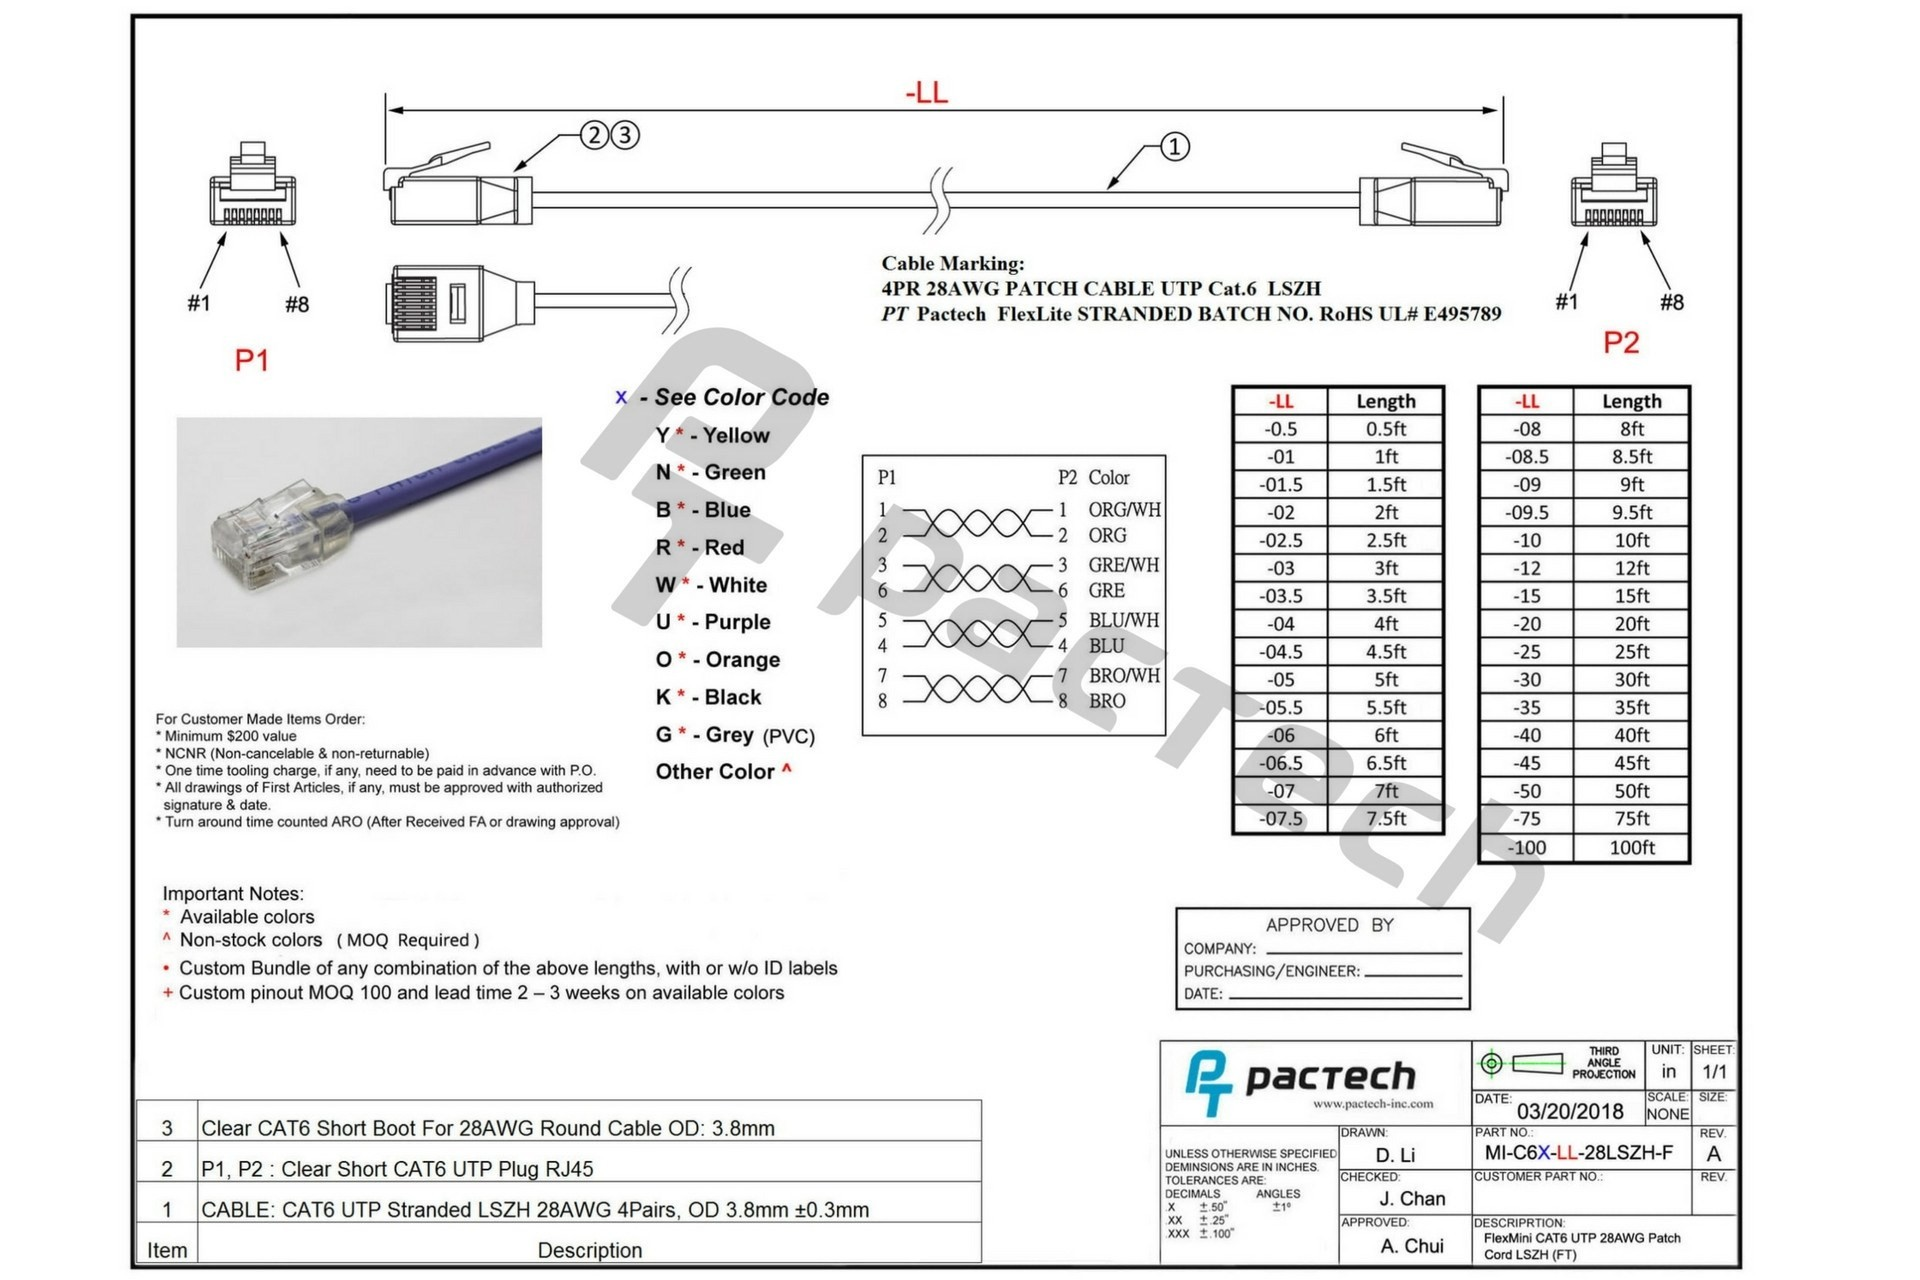 Ethernet Cable Wiring Diagram Black Cat 5 Wiring Diagram Box Wiring Diagram Meta Of Ethernet Cable Wiring Diagram